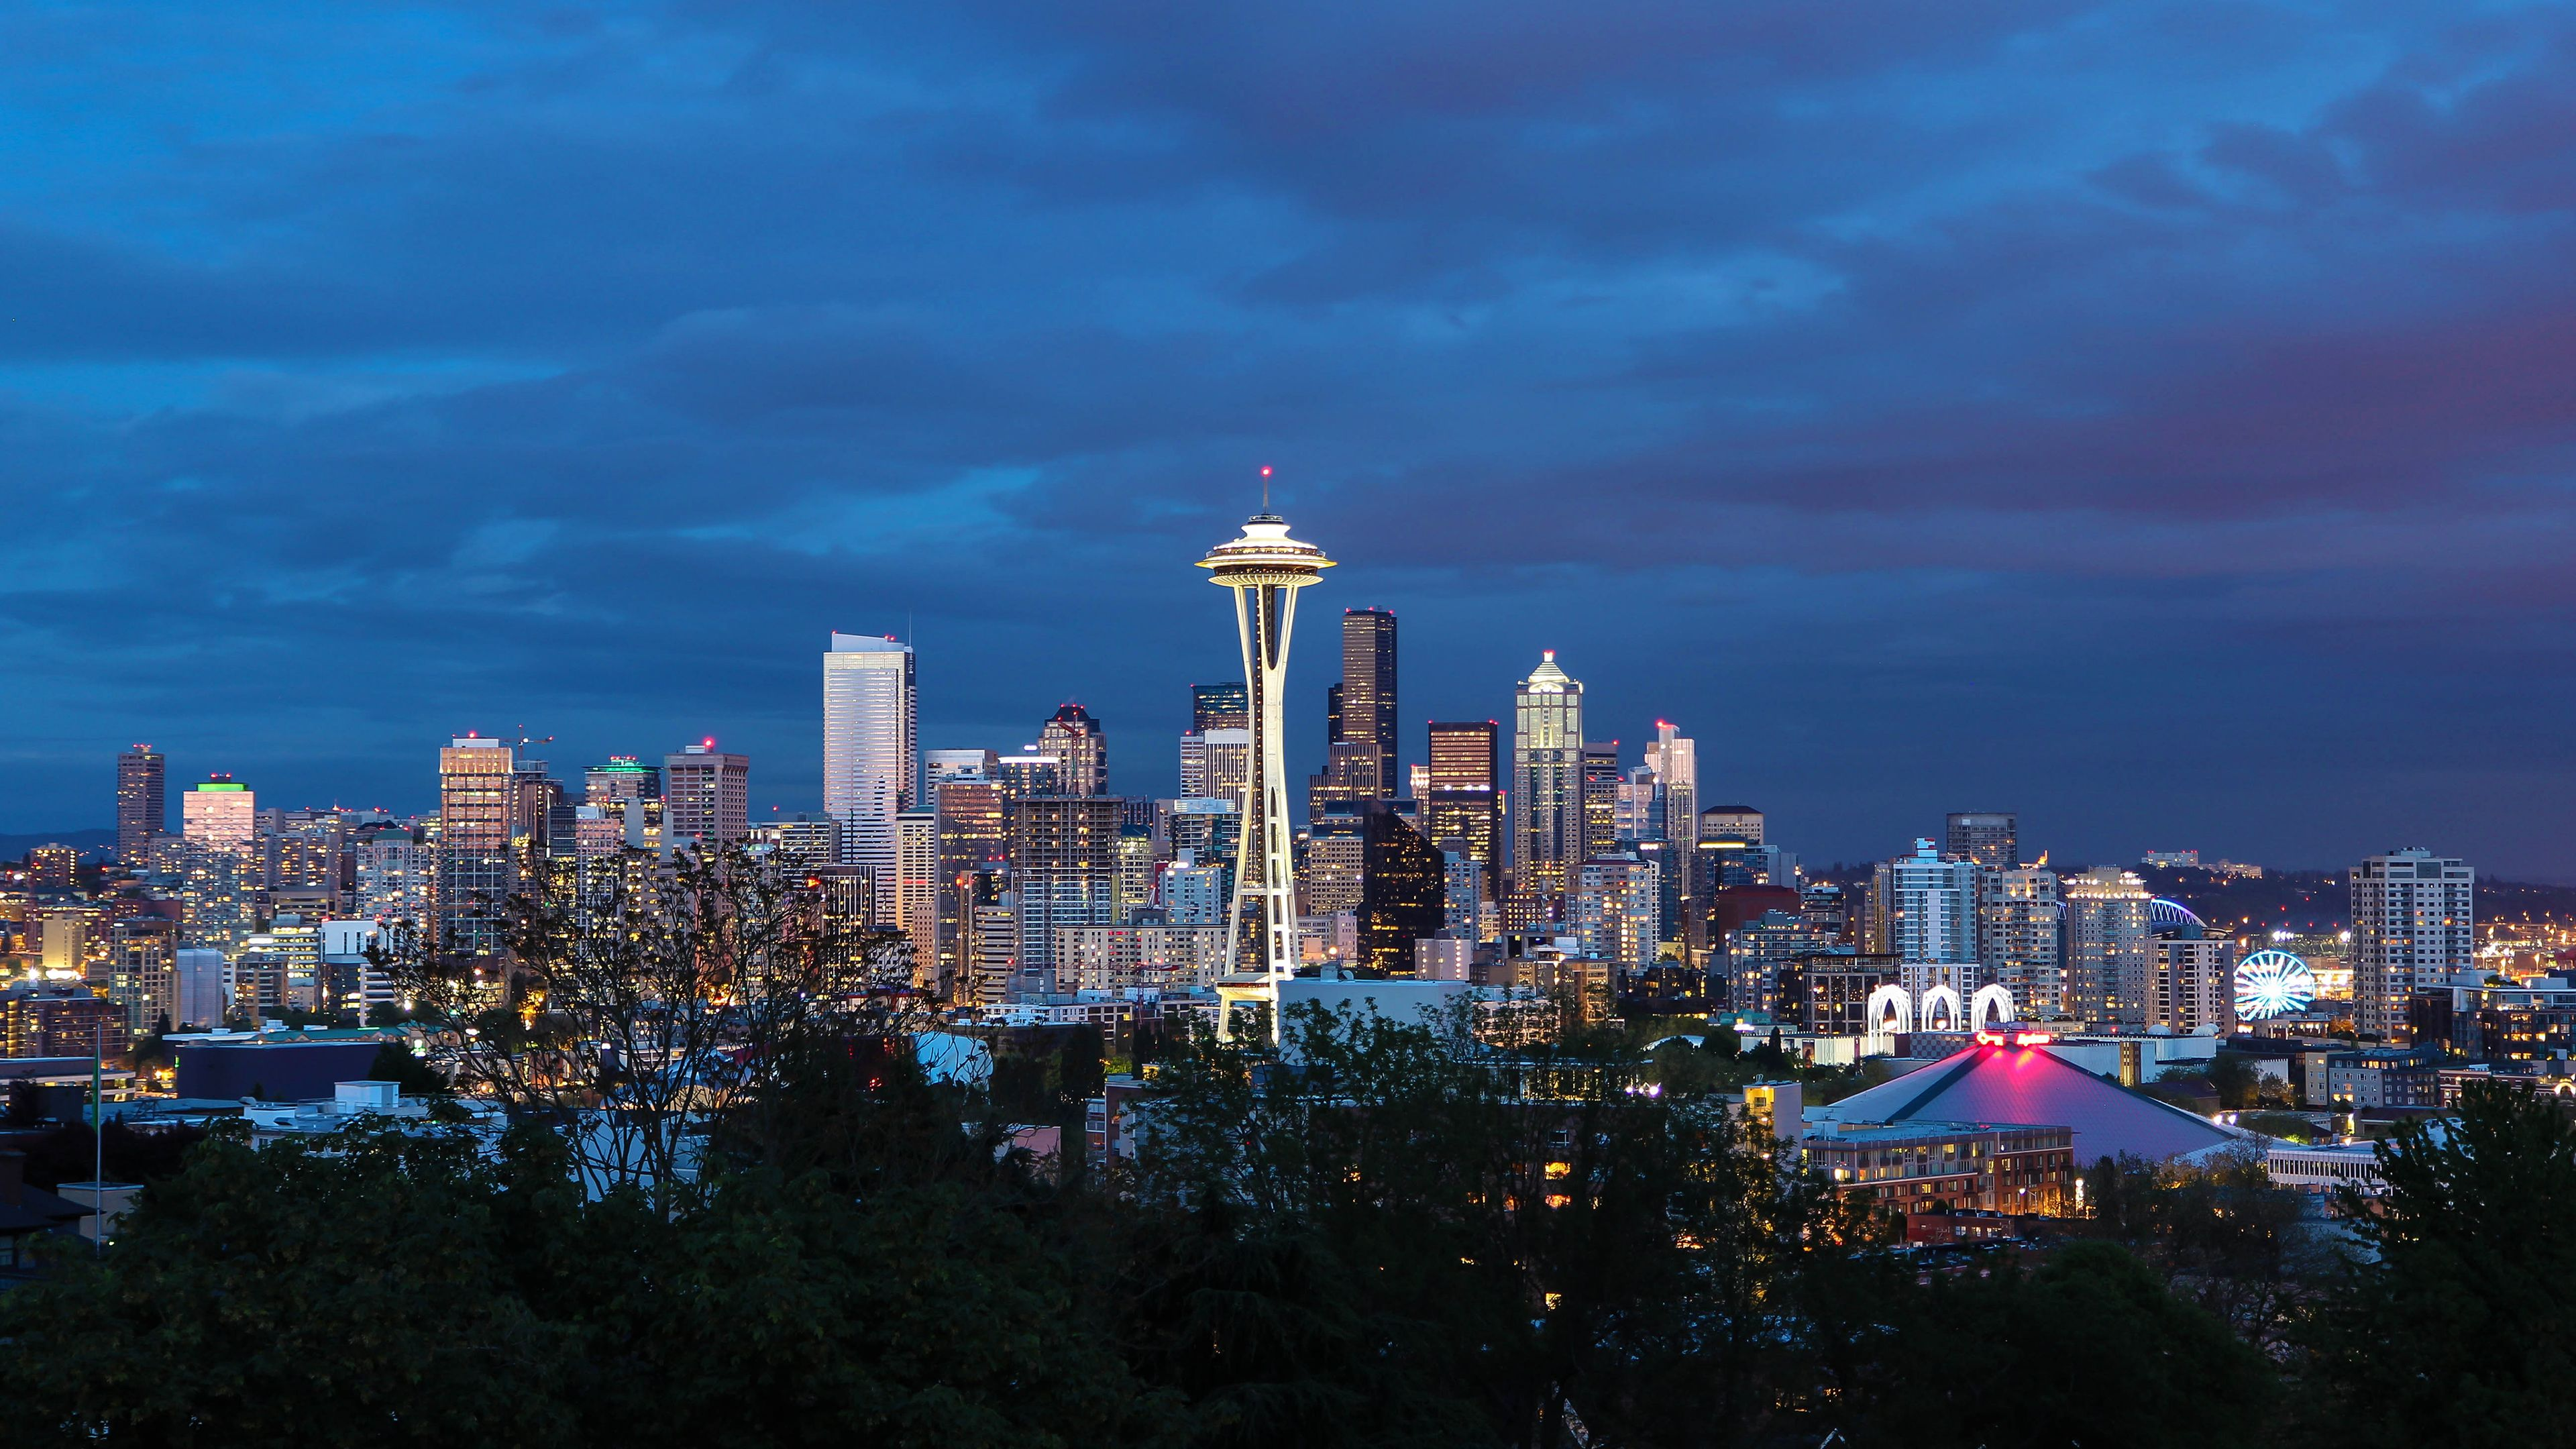 Seattle 4k Wallpapers Top Free Seattle 4k Backgrounds Wallpaperaccess